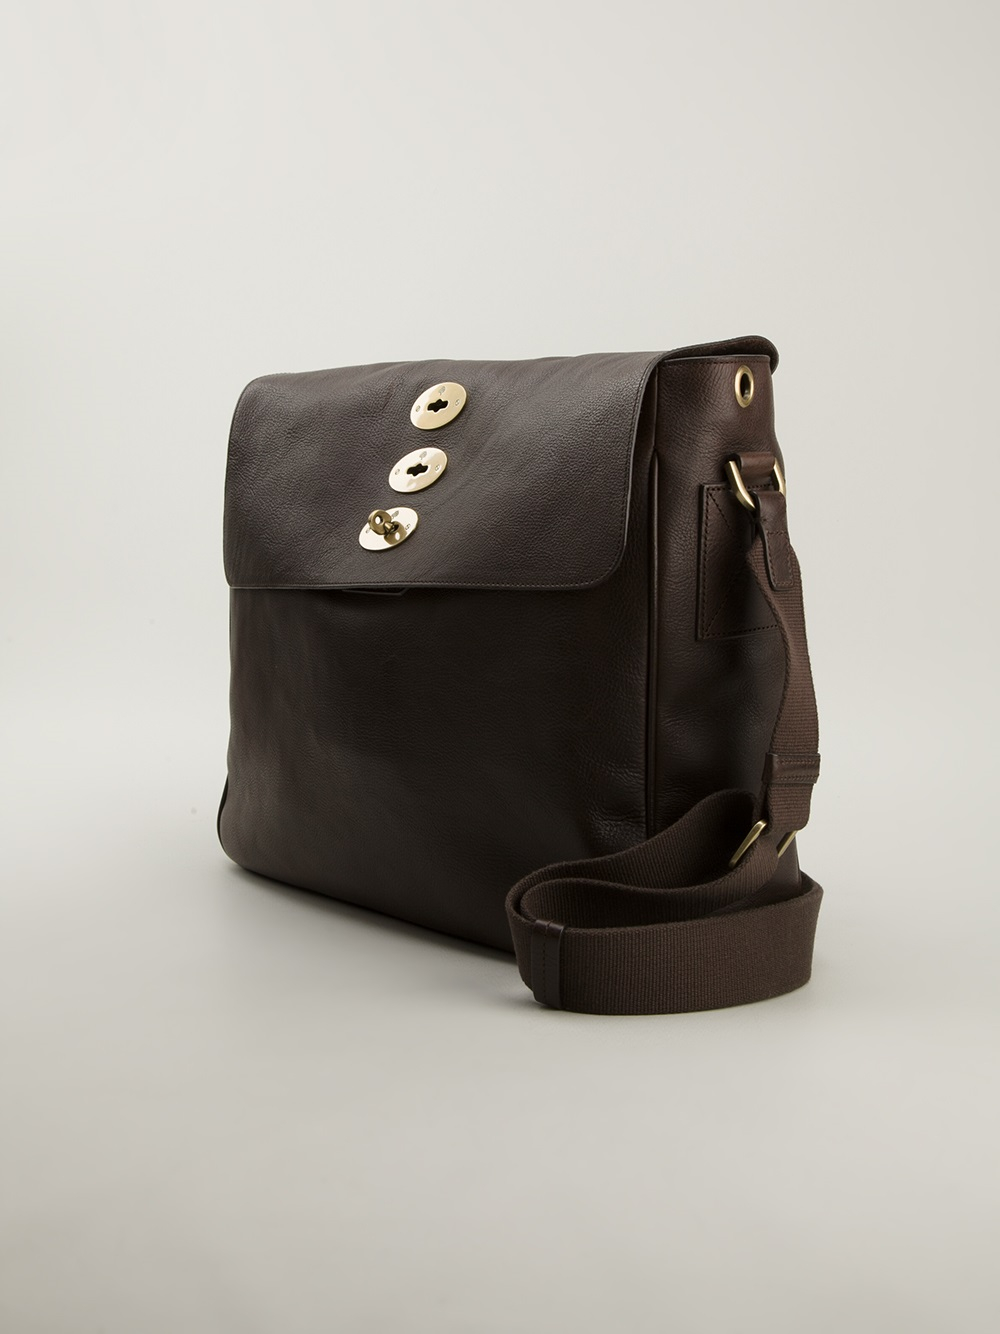 Mulberry Brynmore Messenger Bag In Brown For Men | Lyst